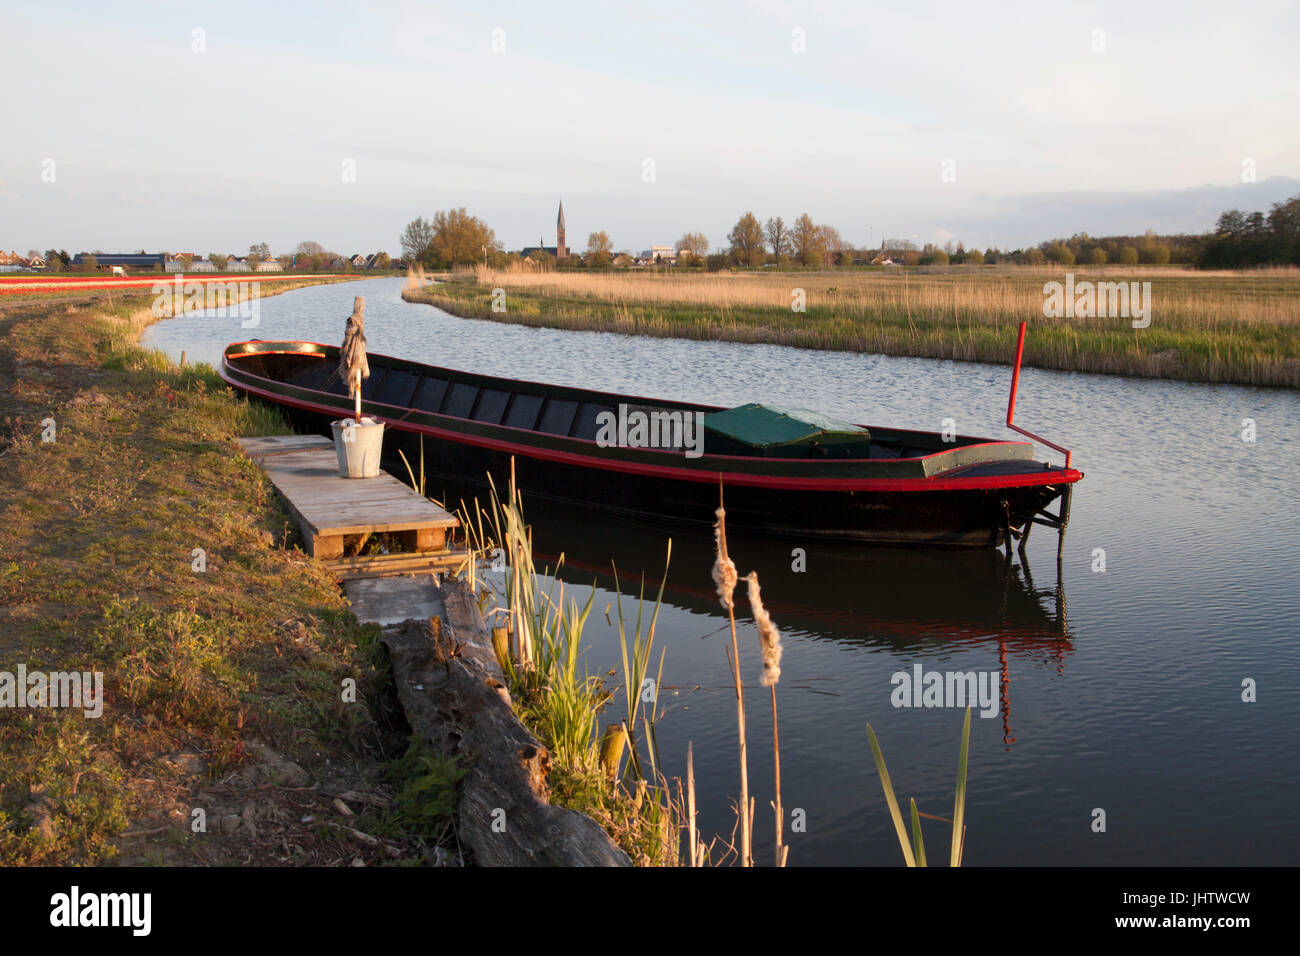 Picturesquely view of a rural scene of a ditch with an old steel heavy boat - Stock Image